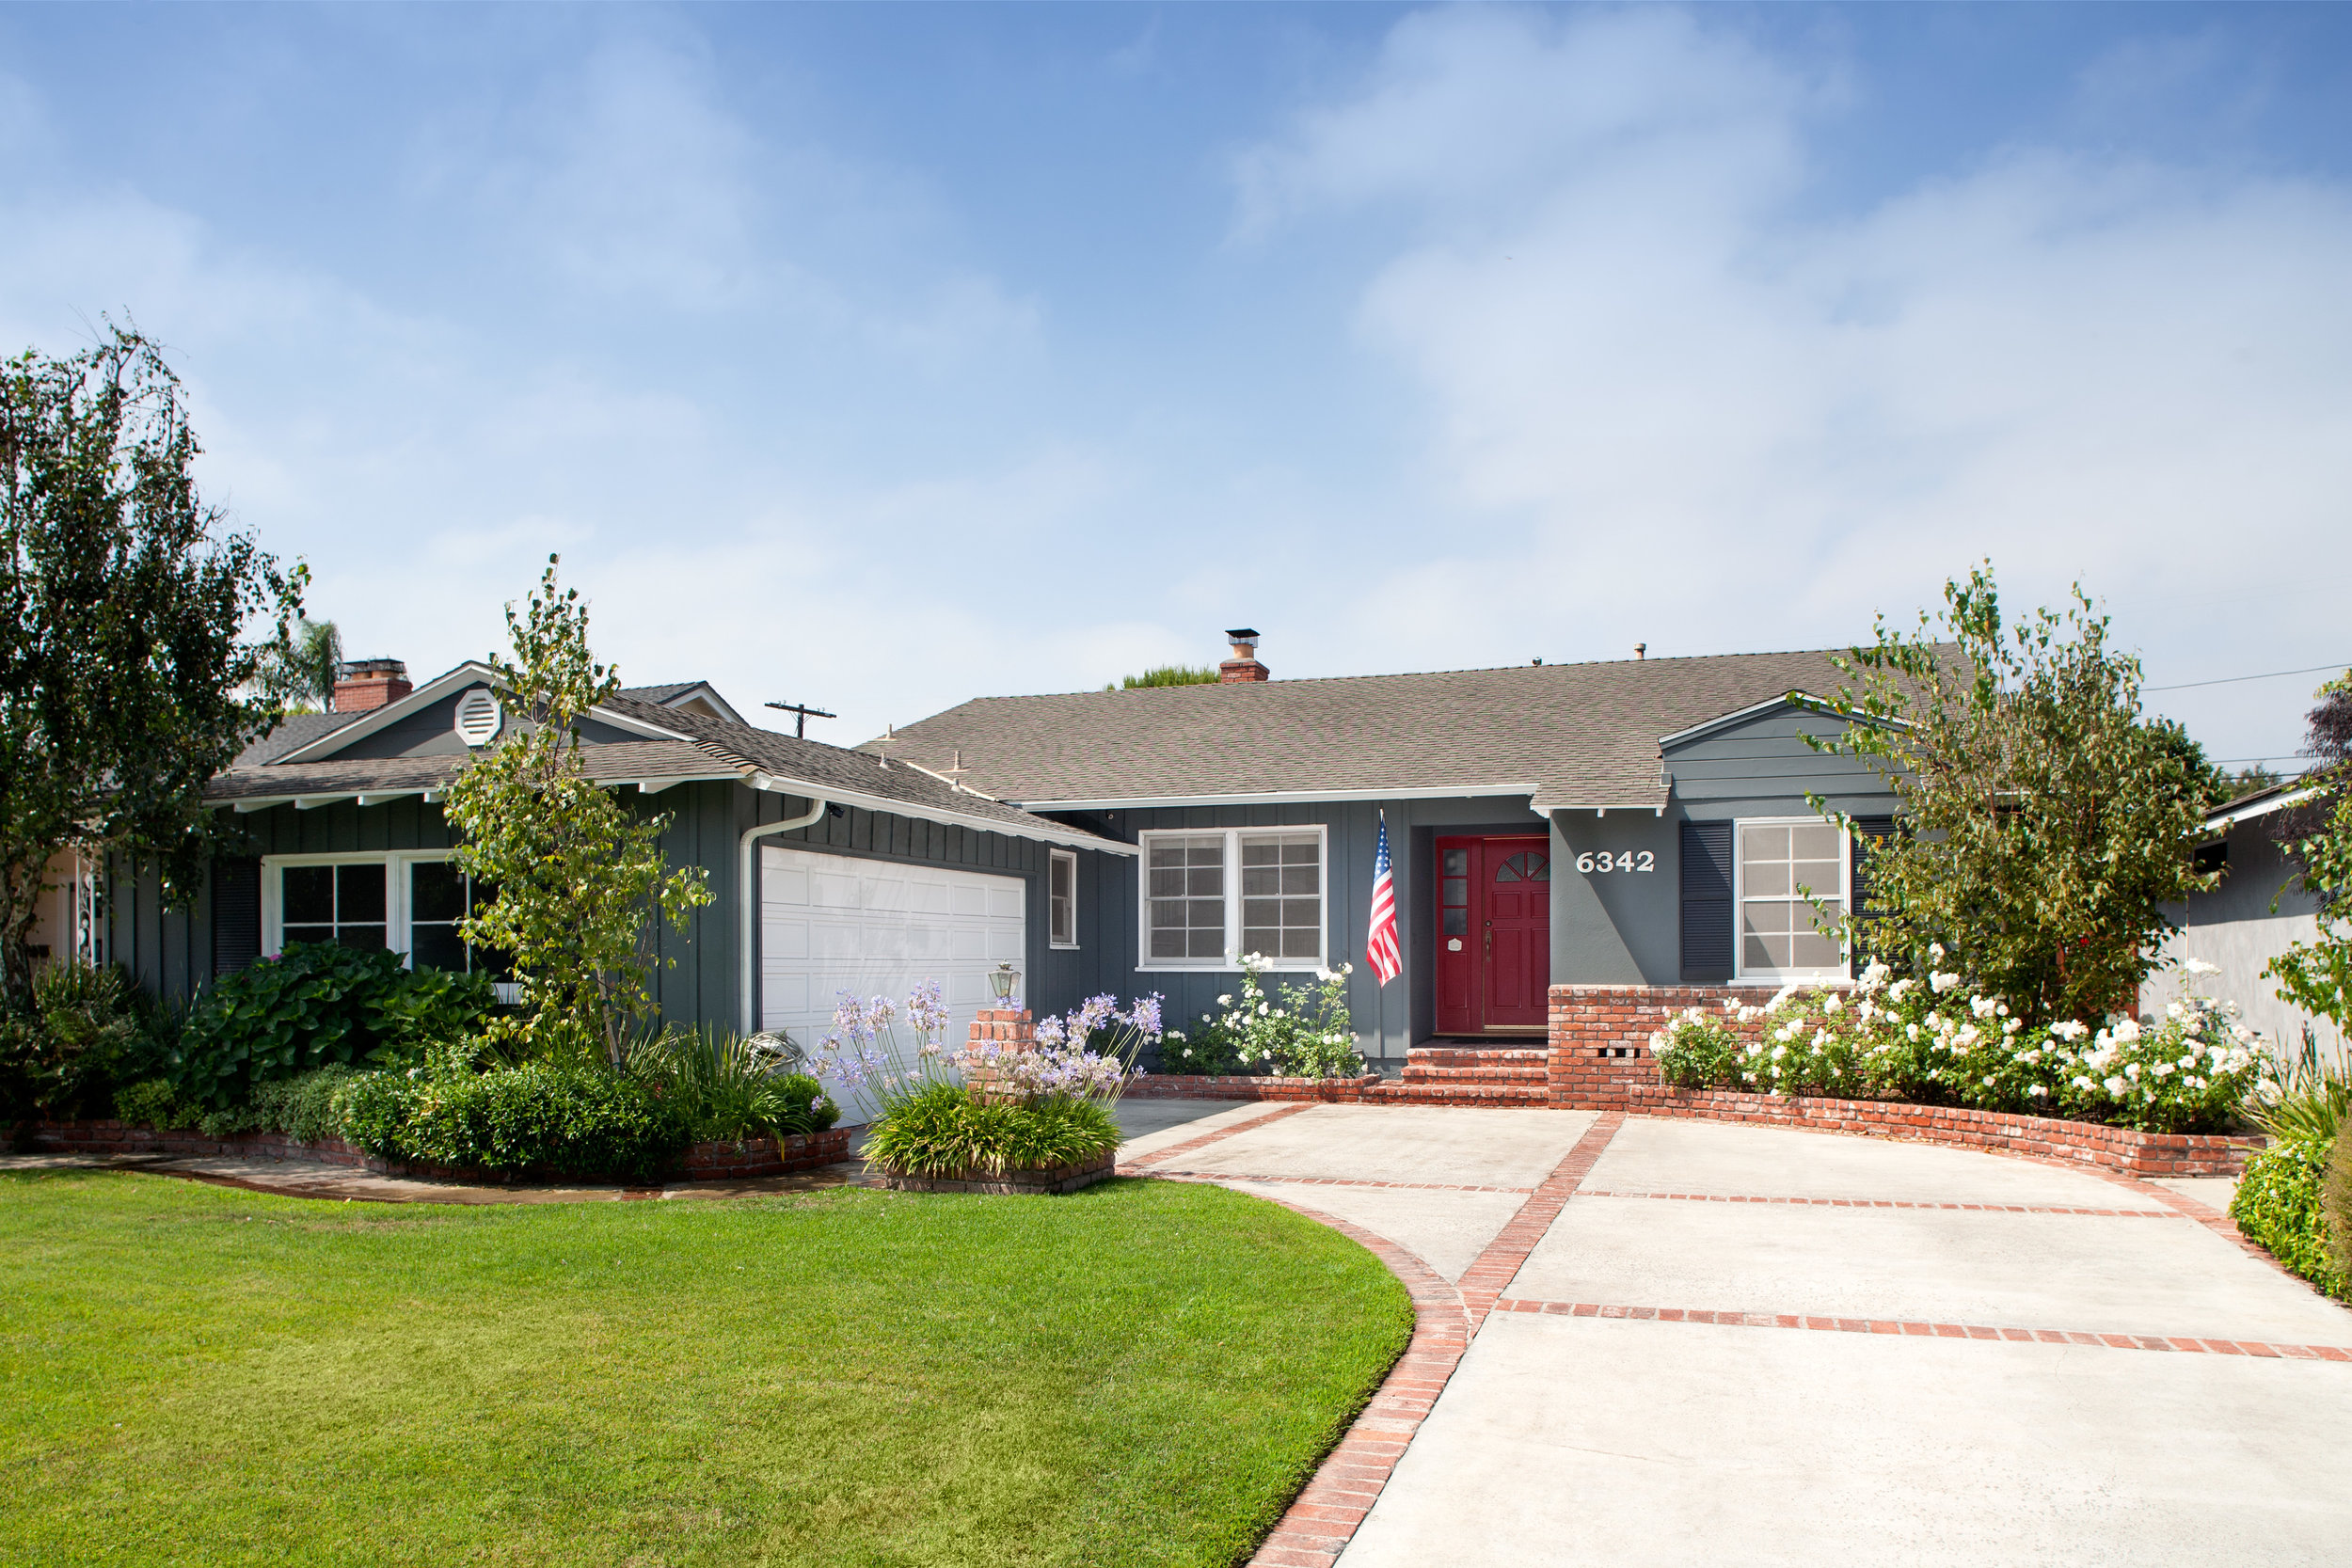 6342 W 78th St | Westchester | Offered at $1,195,000